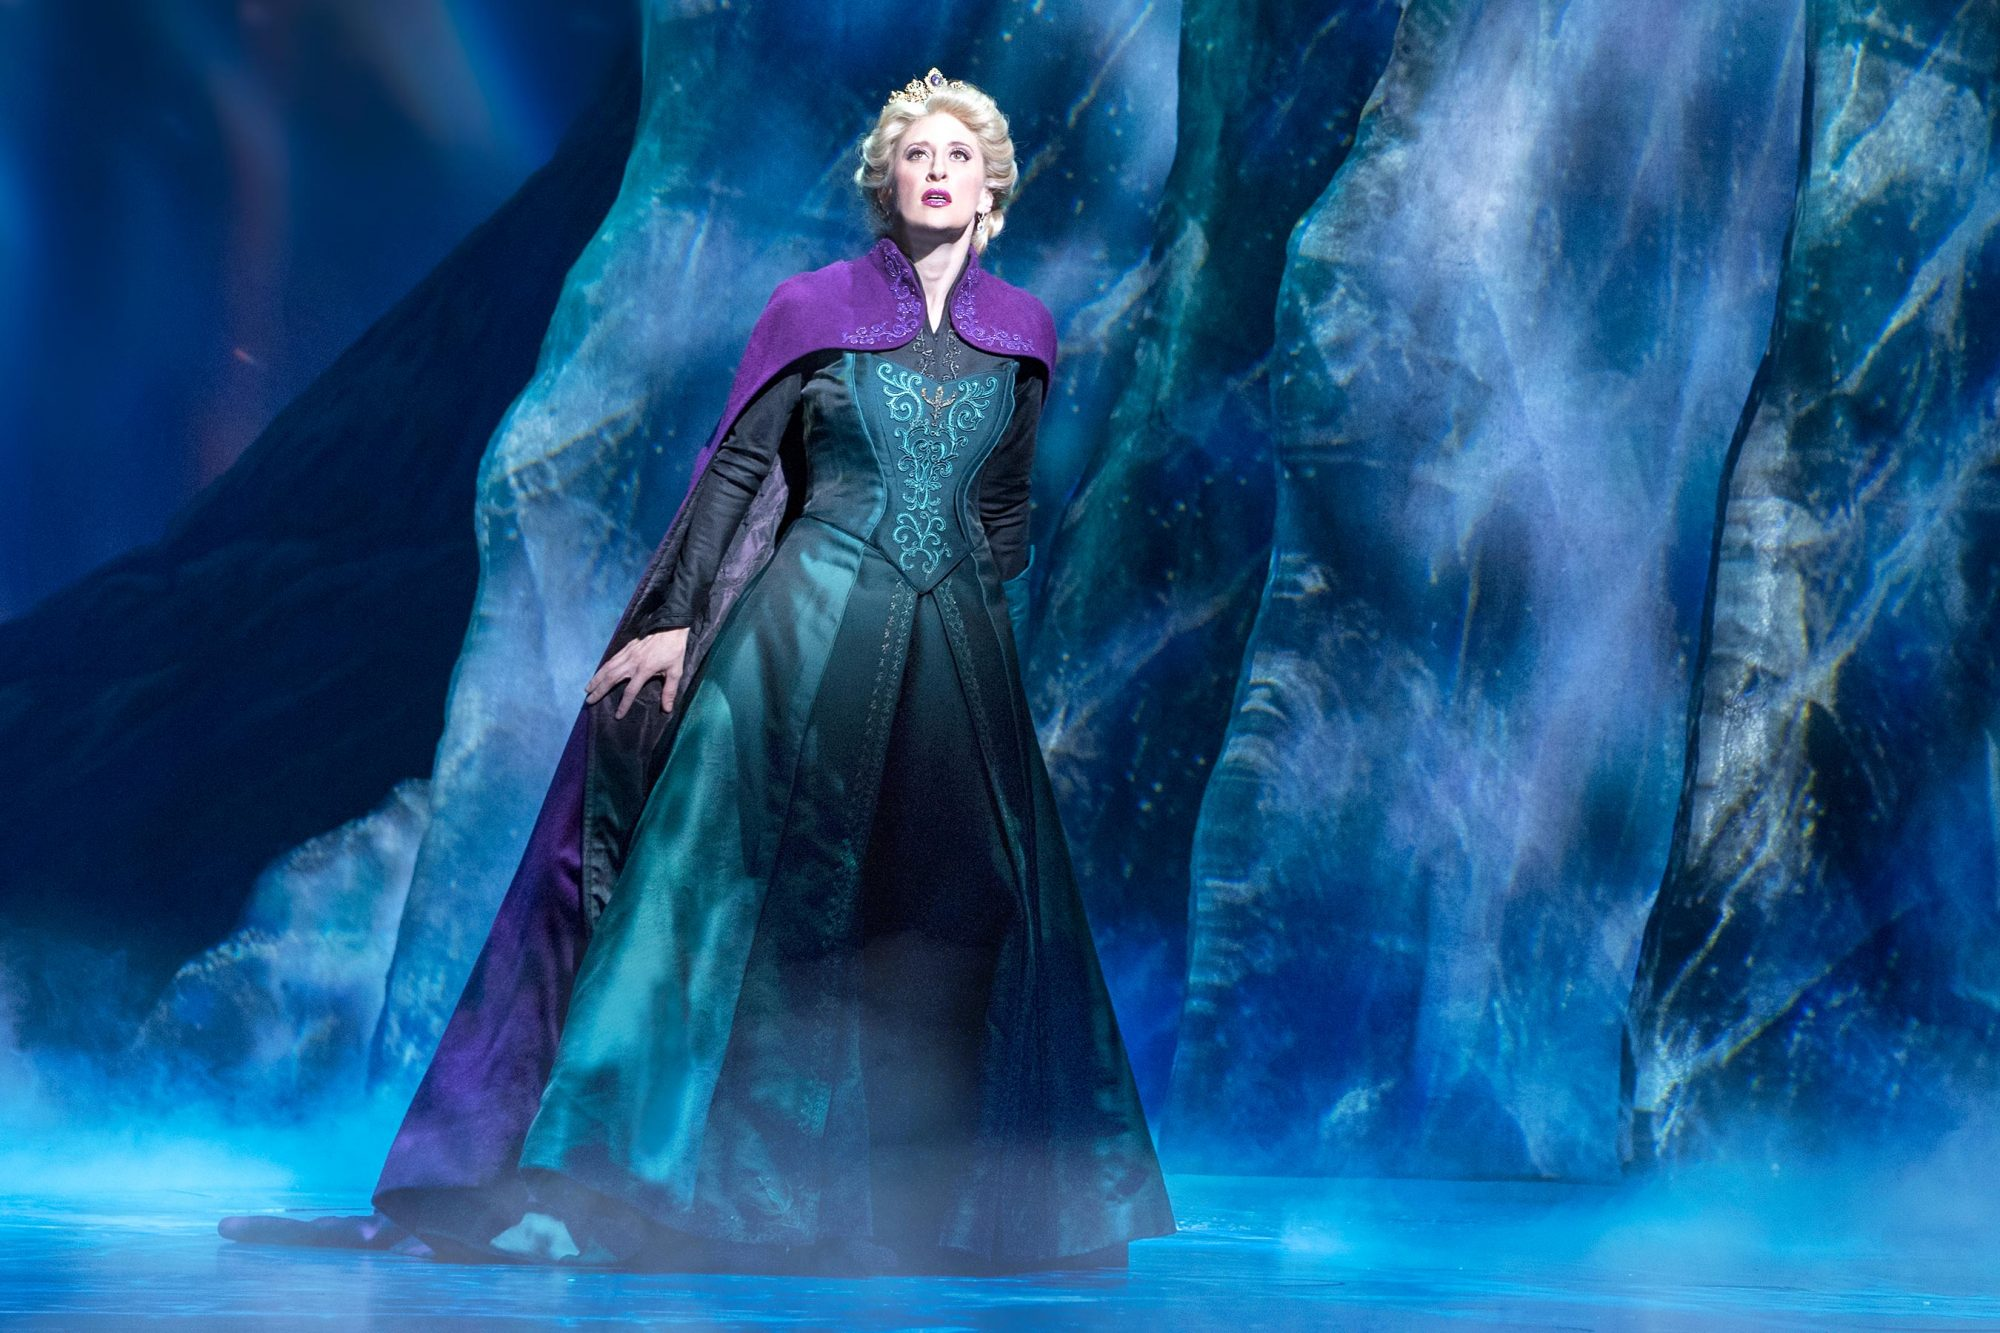 F:PHOTOMediaFactory ActionsRequests DropBox48890#disneyCaissie Levy as Elsa in FROZEN on Broadway - Freeze. Photo by Deen van Meer.jpg